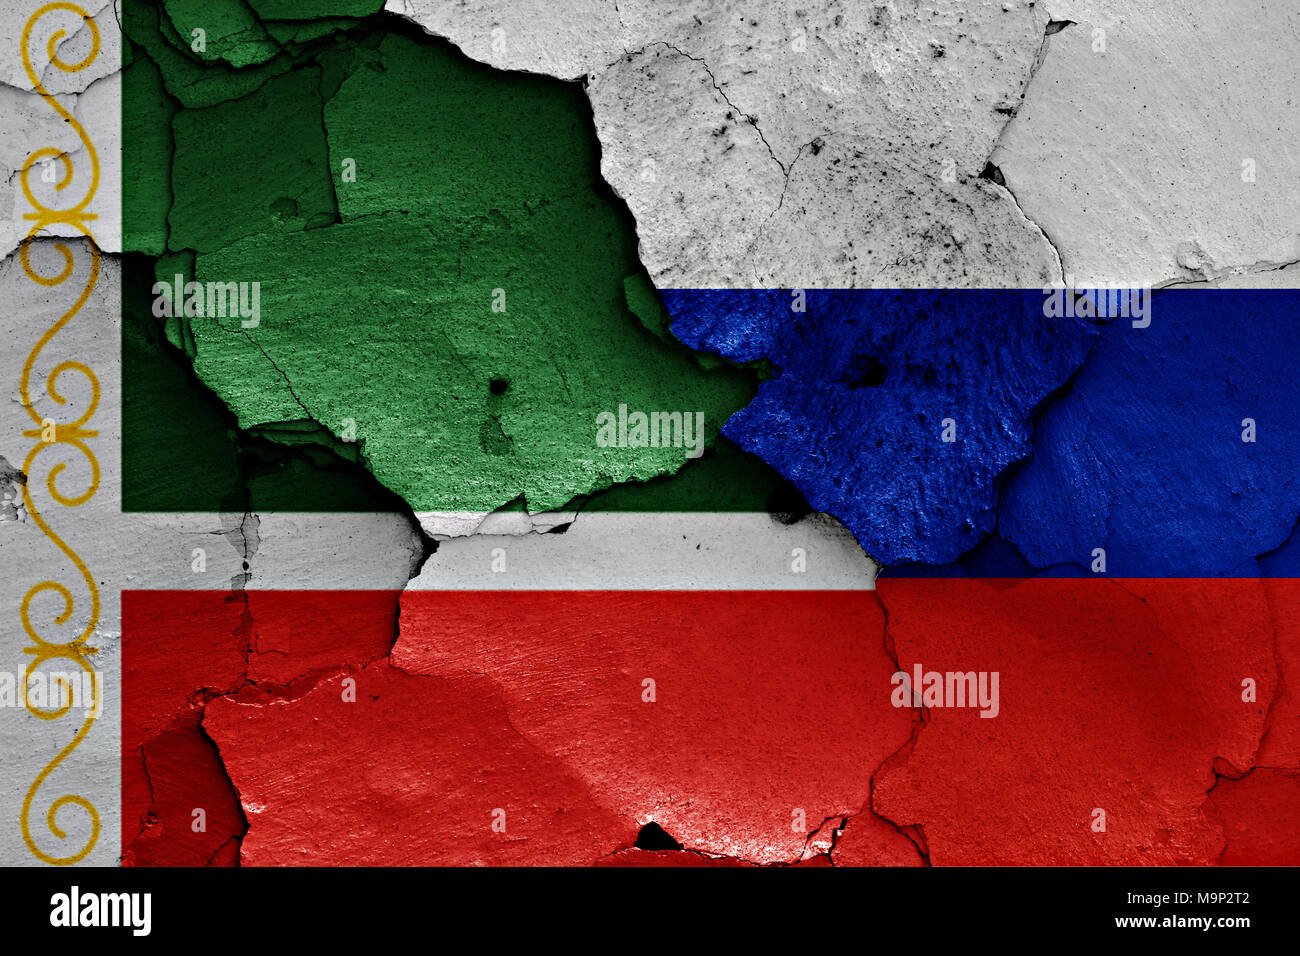 flags of Chechnya and Russia painted on cracked wall - Stock Image